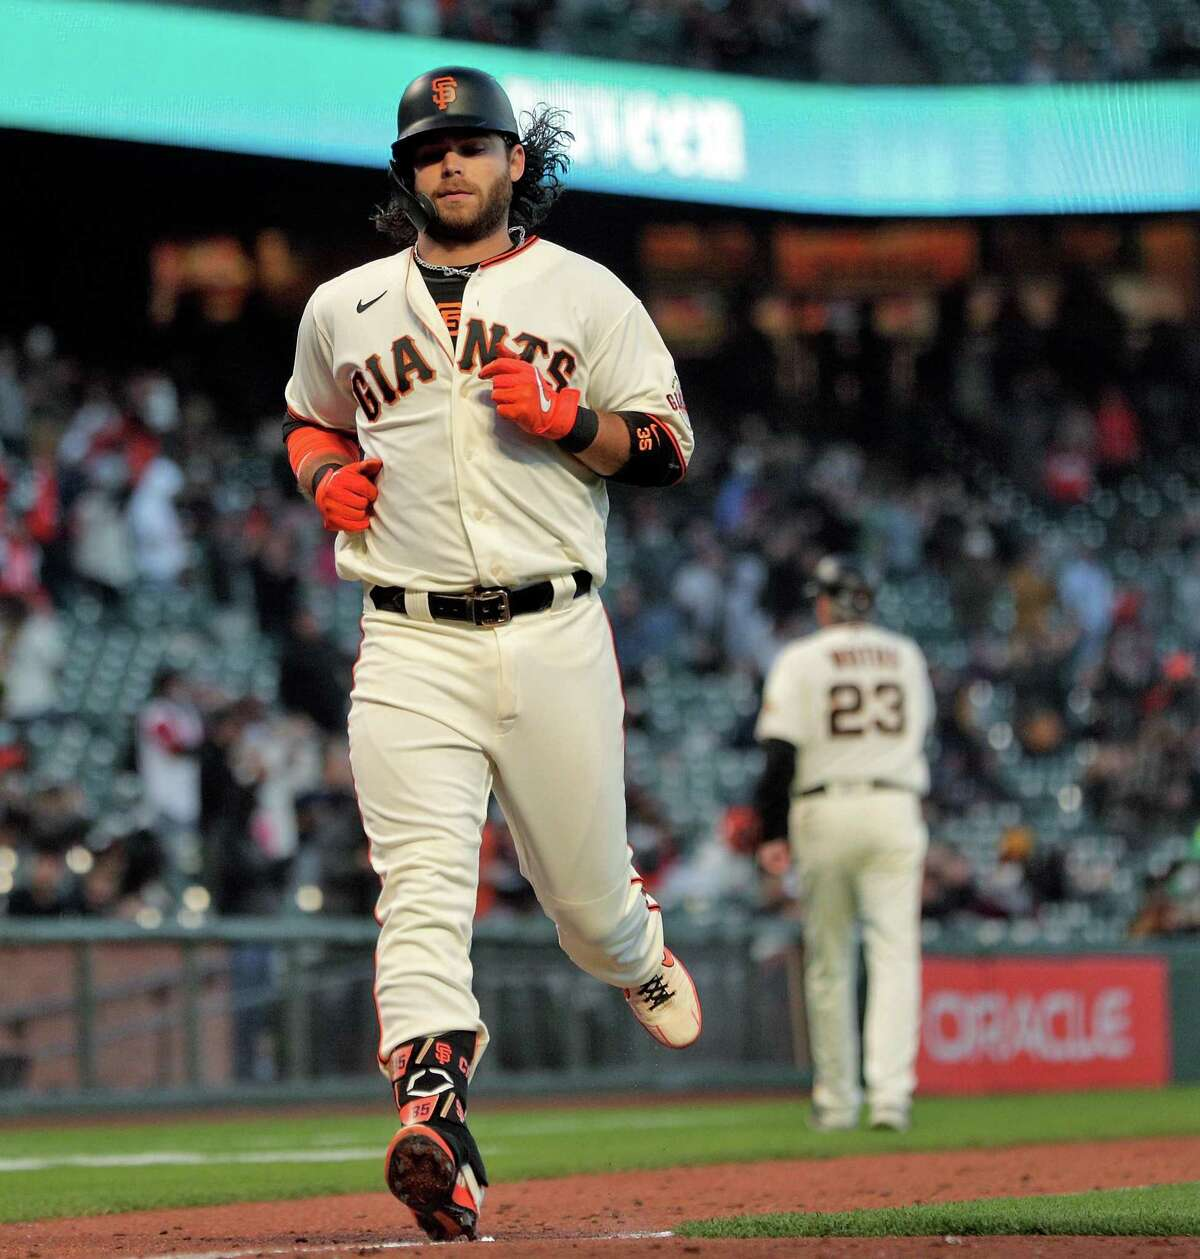 Brandon Crawford (35) touches home after hitting his two-run homerun in the fifth inning as the San Francisco Giants played the Arizona Diamondbacks at Oracle Park in San Francisco, Calif., on Monday, June 14, 2021.